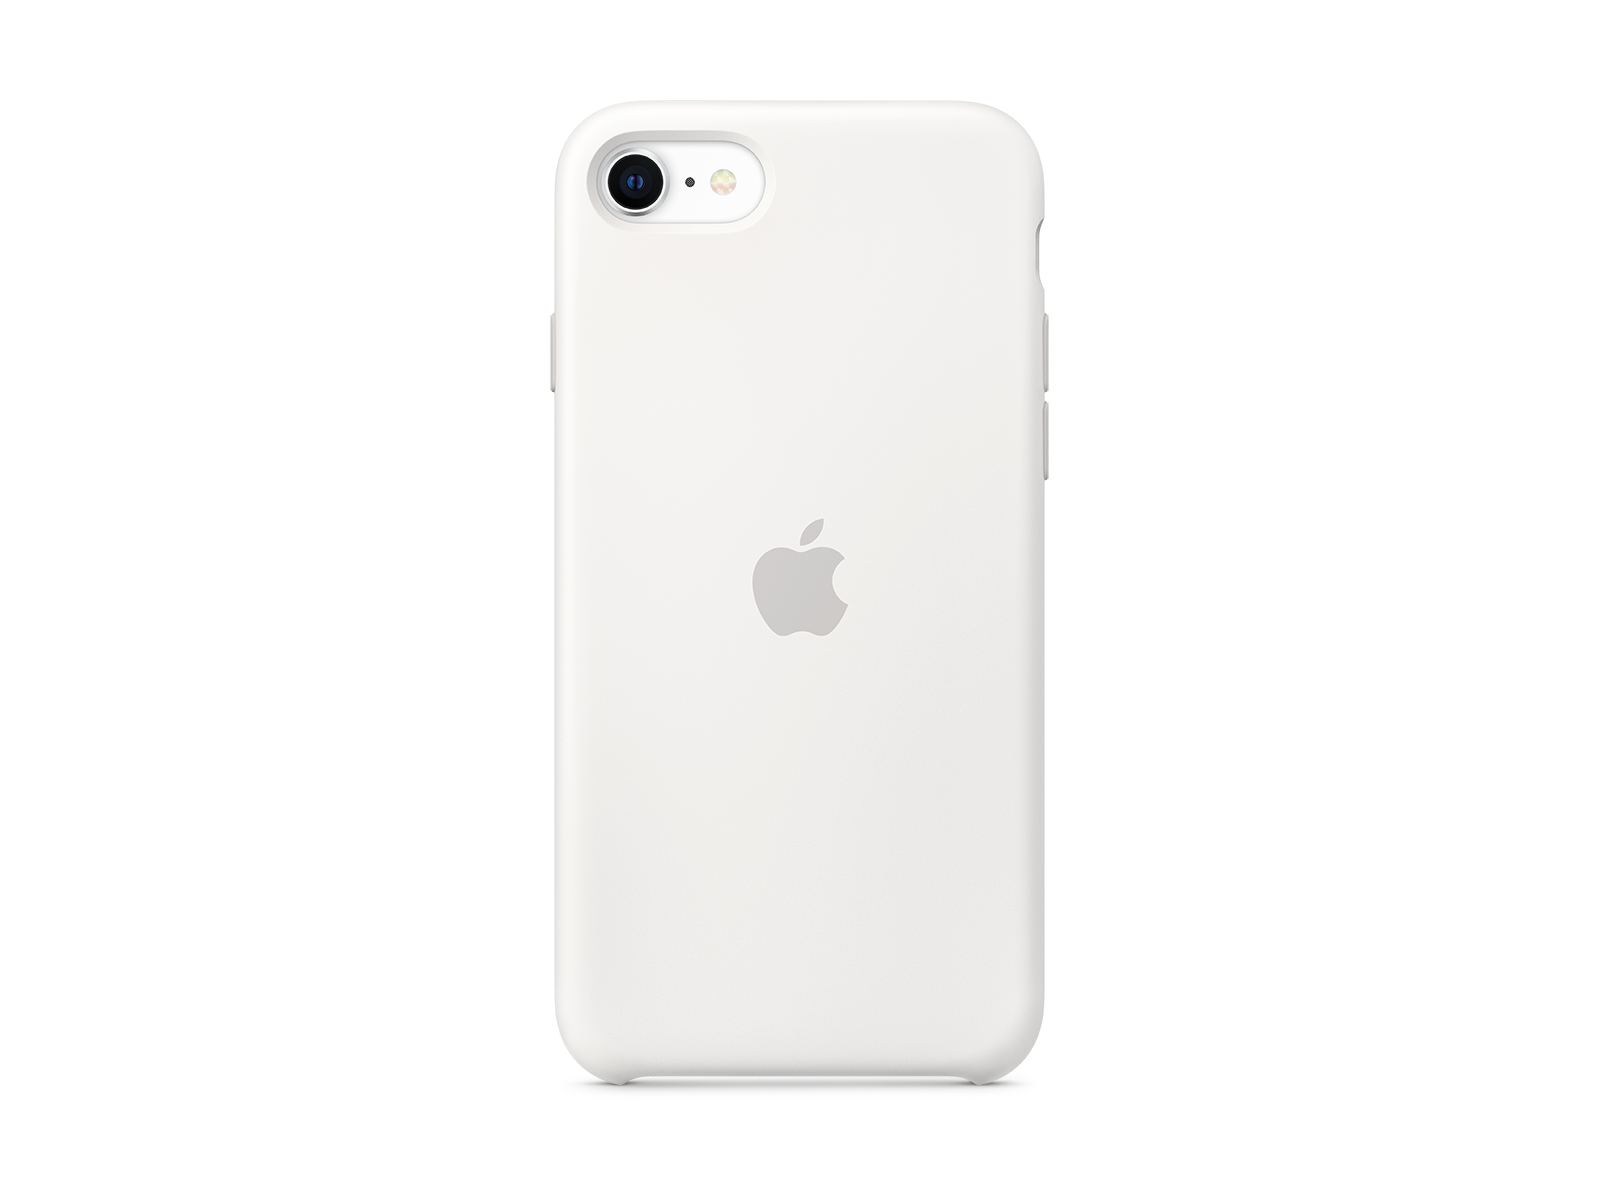 iPhone SE Silicone Case White | Køb det her | Telenor